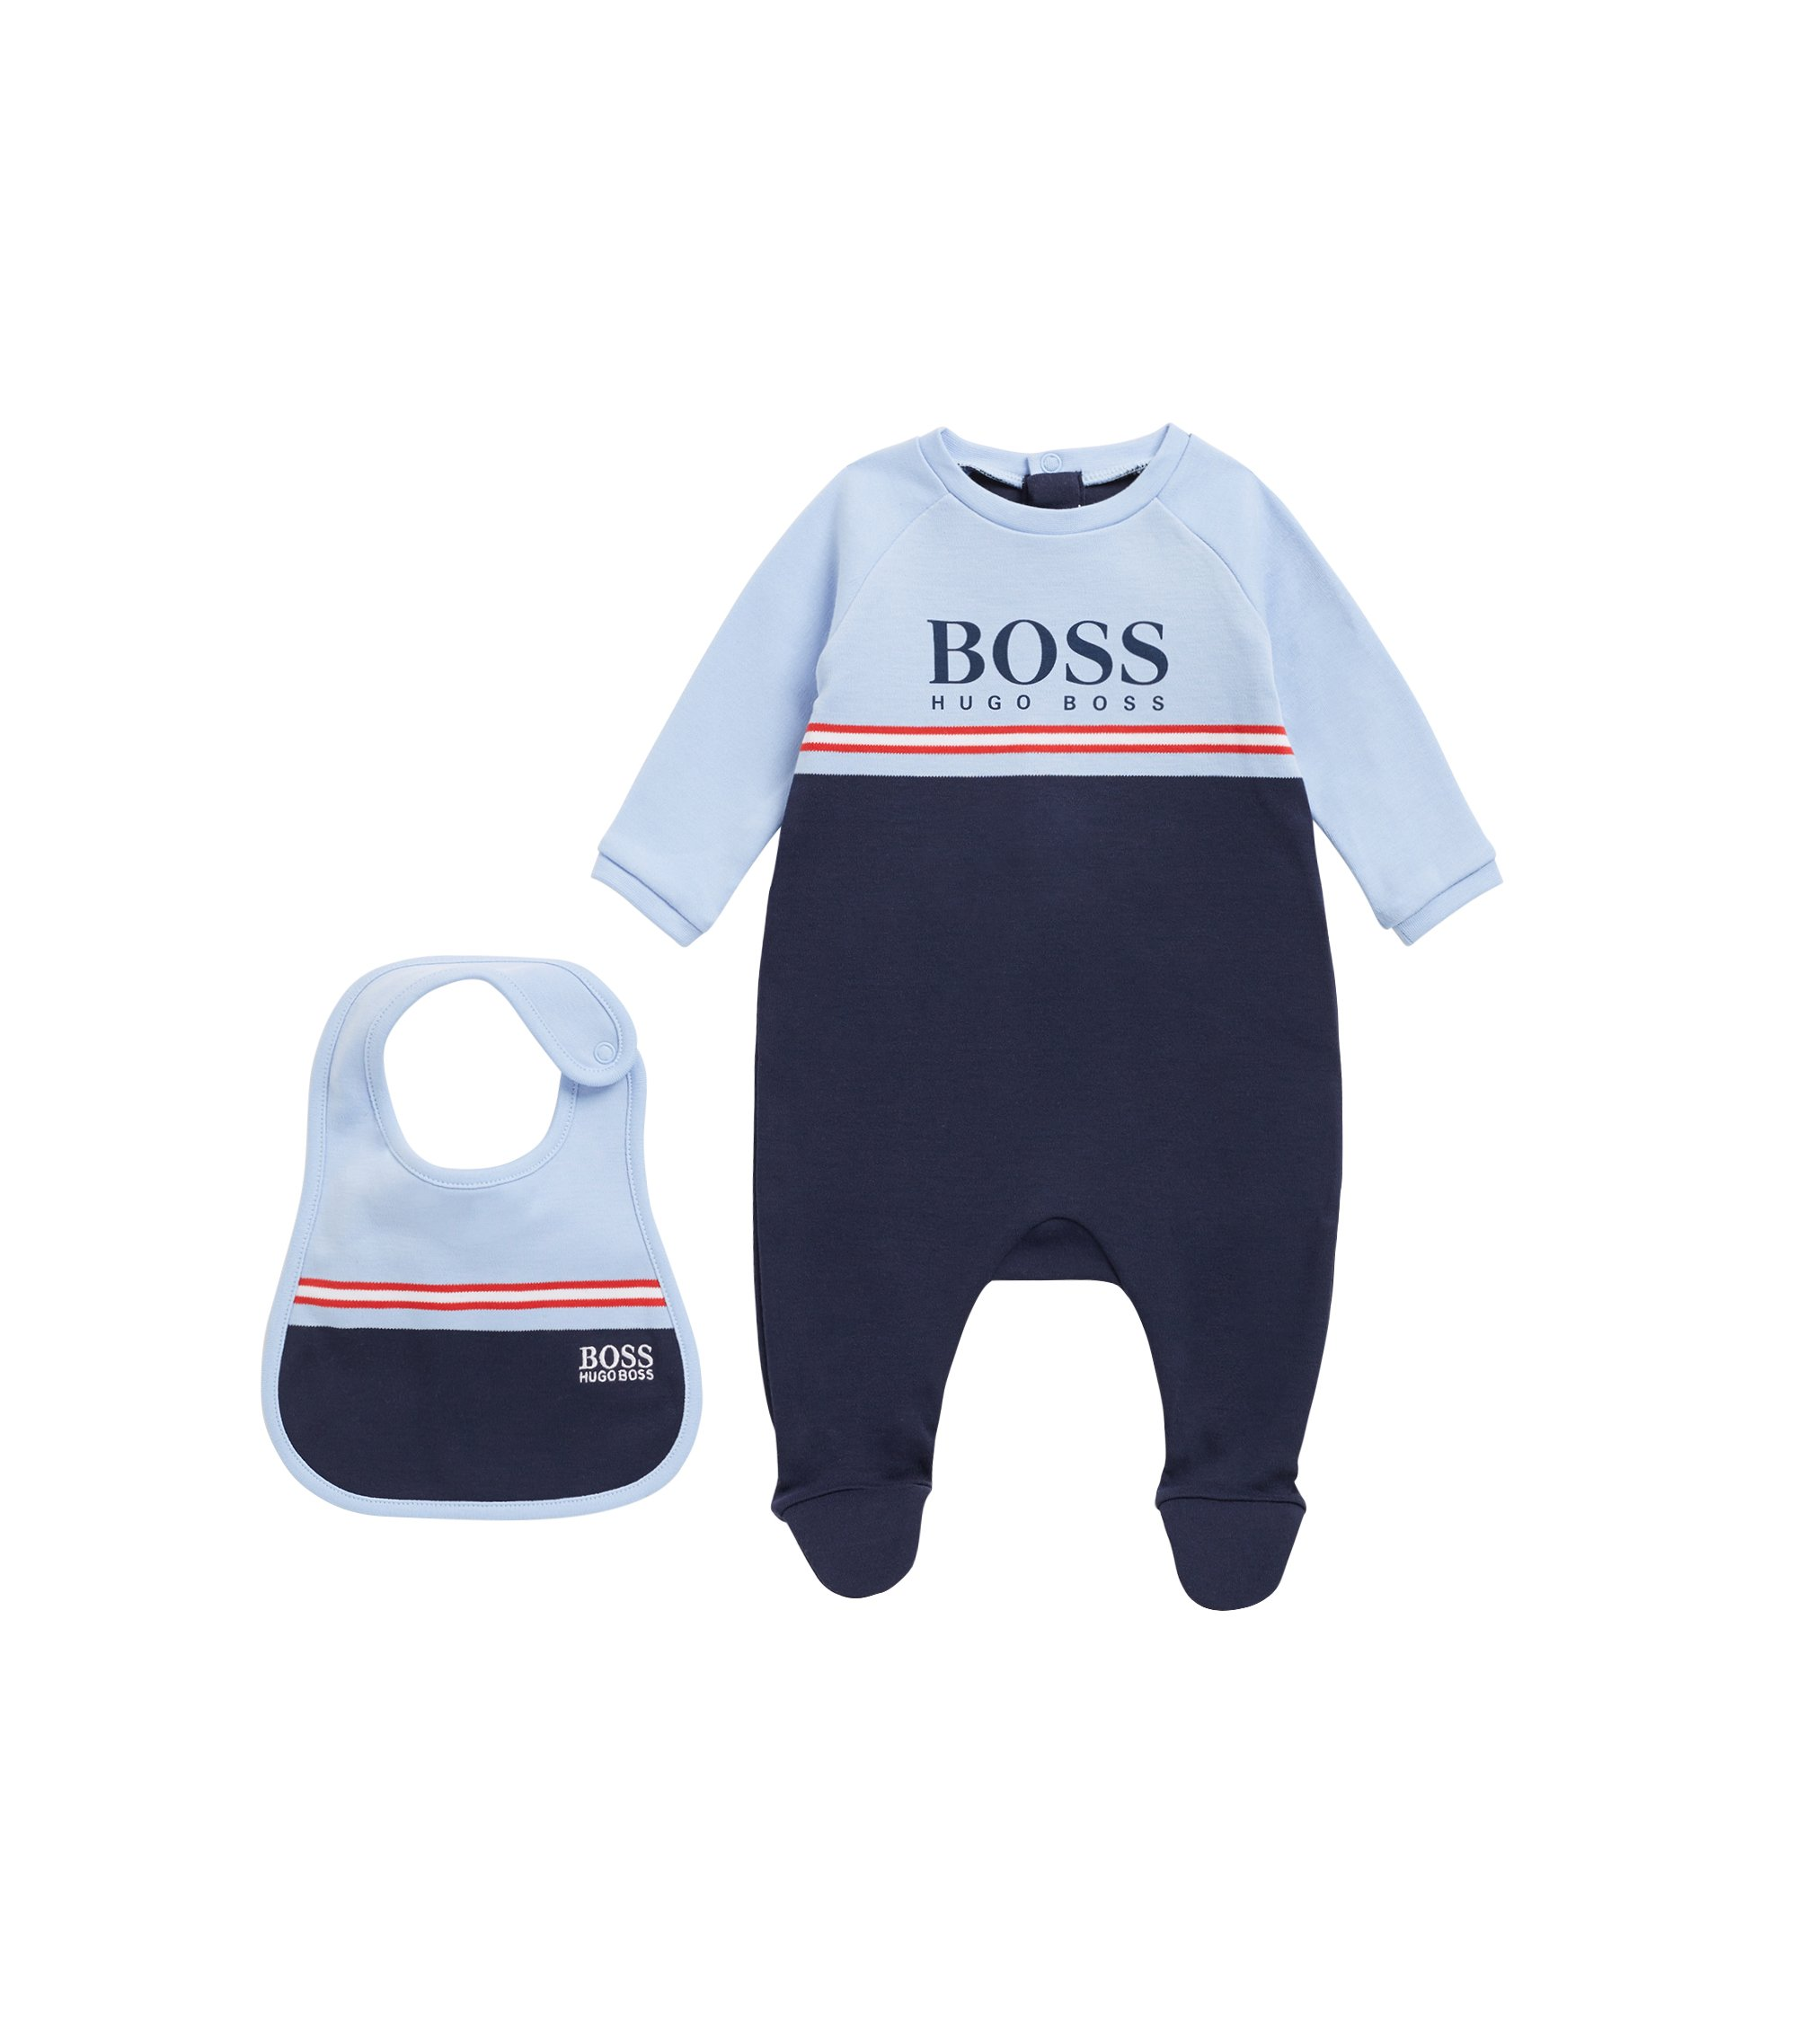 Baby sleepsuit and bib set in interlock cotton, Patterned